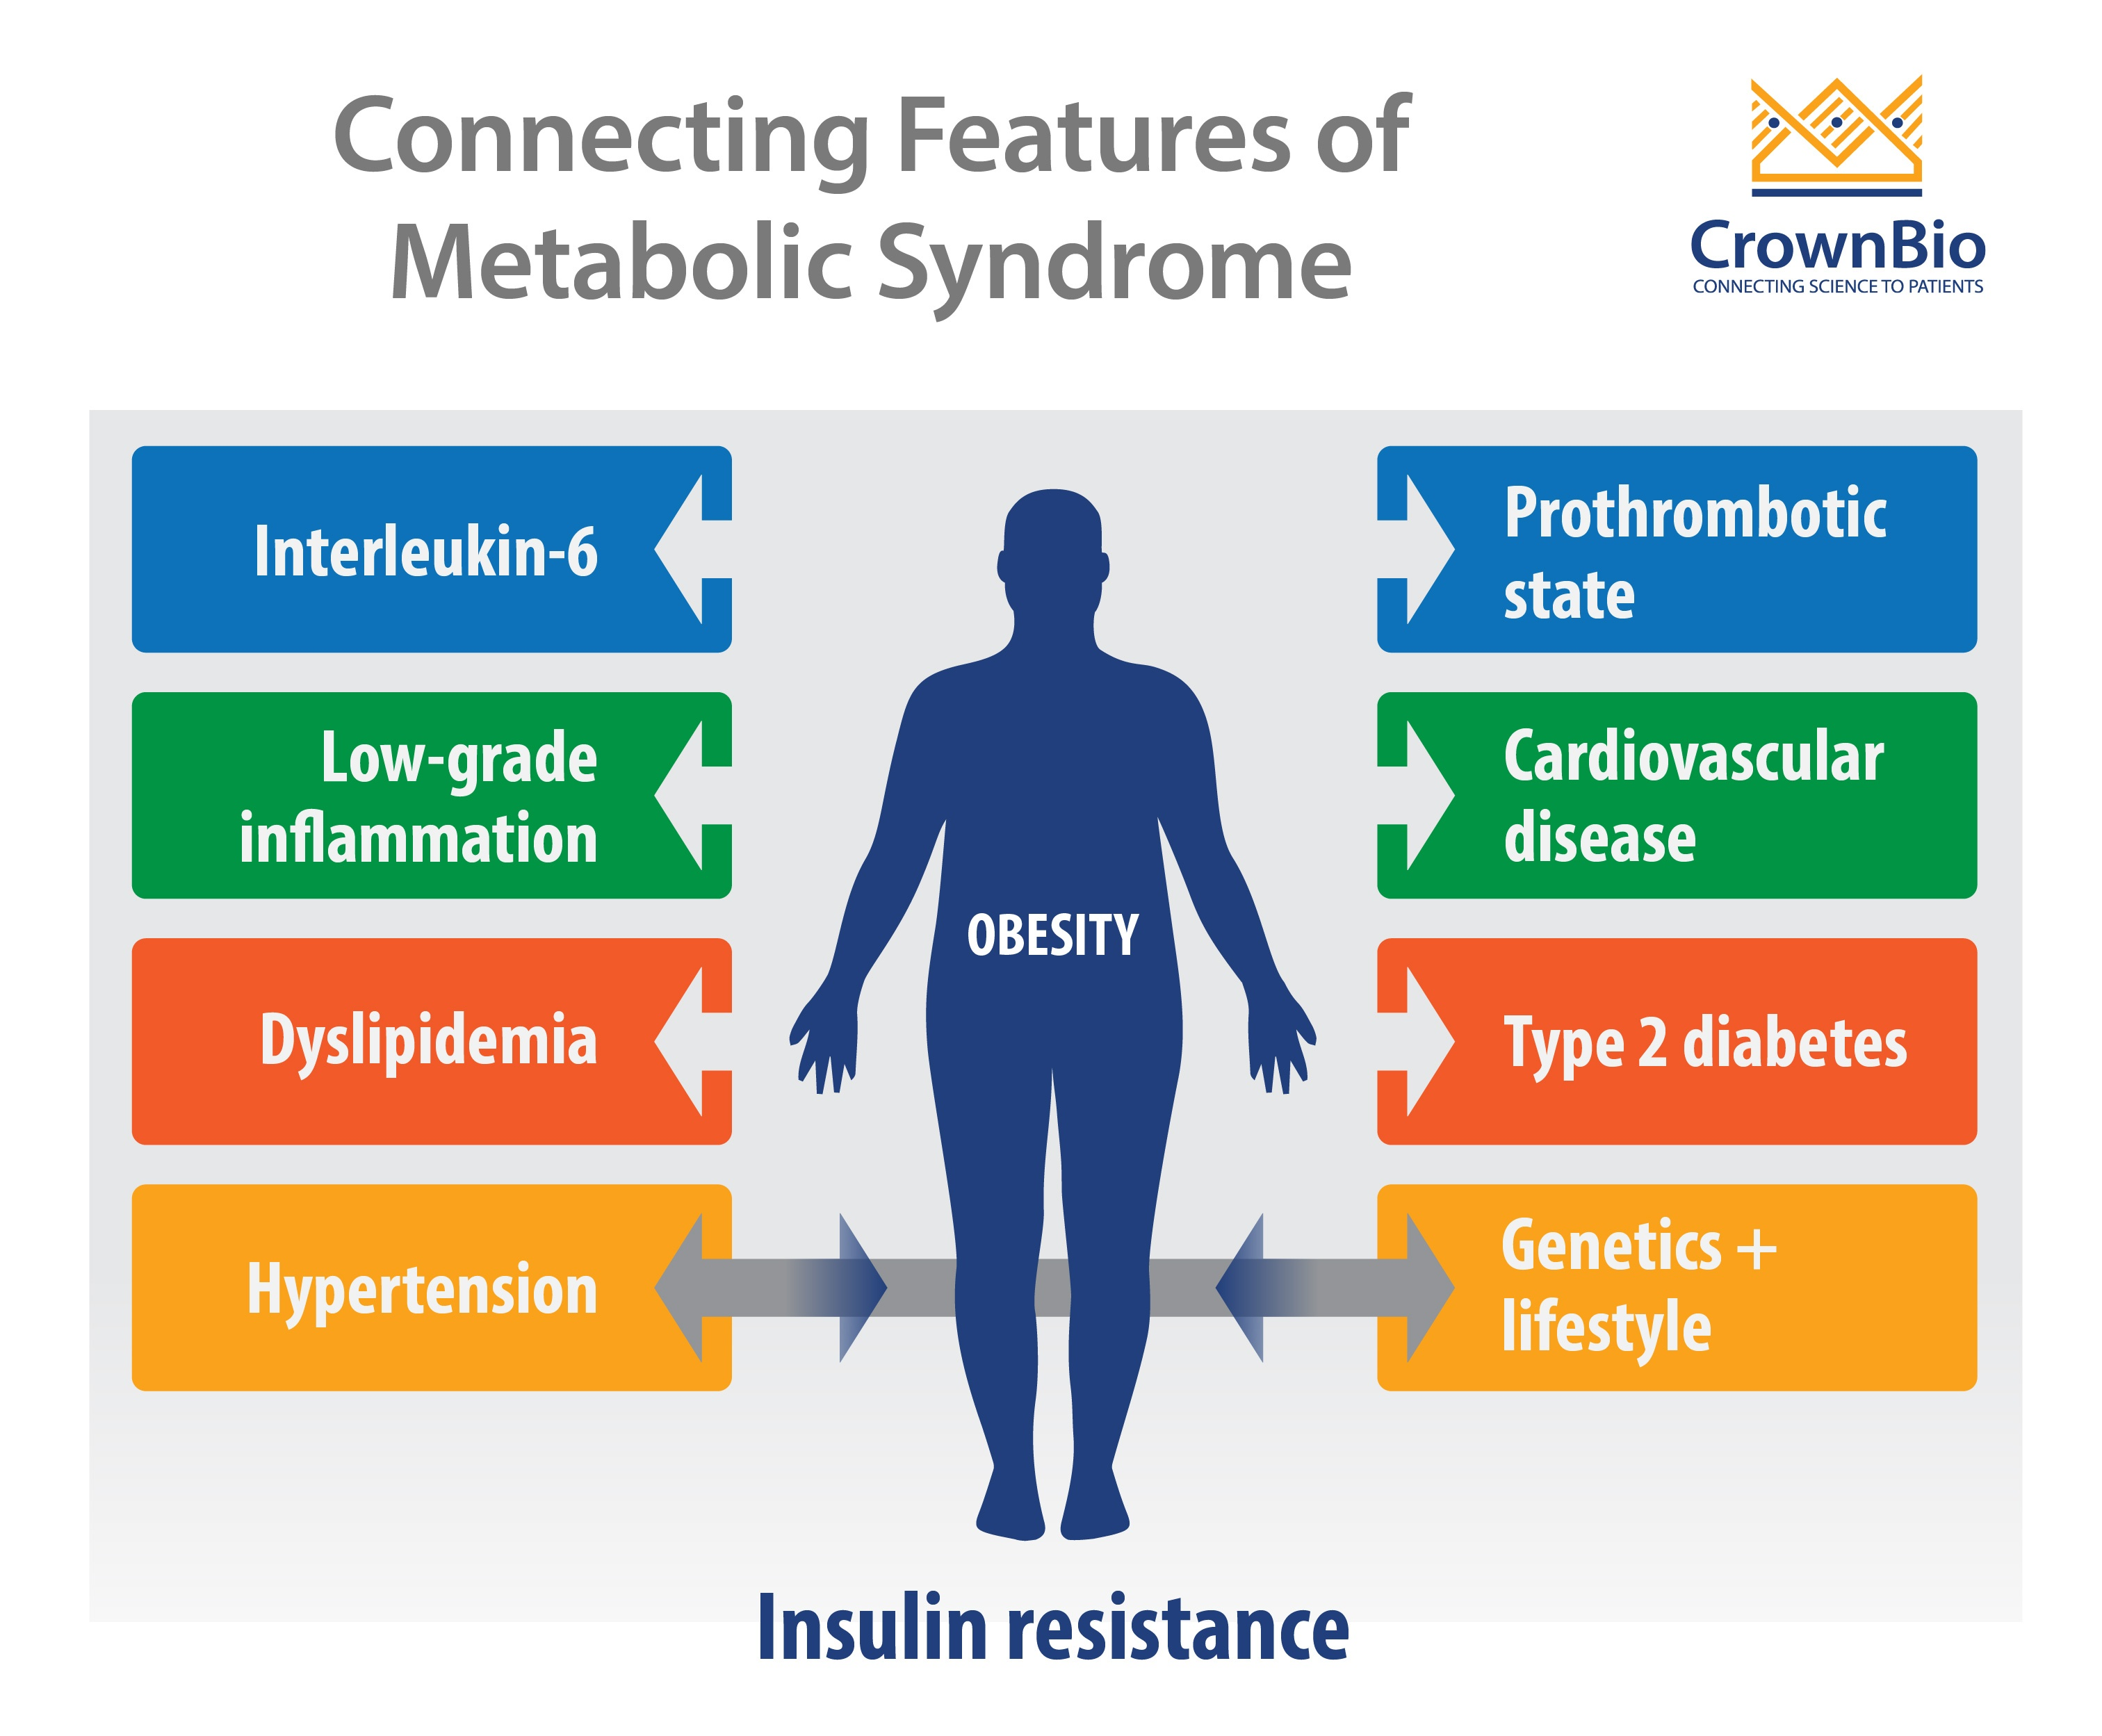 Connecting Inflammation, Diabetes, and Obesity